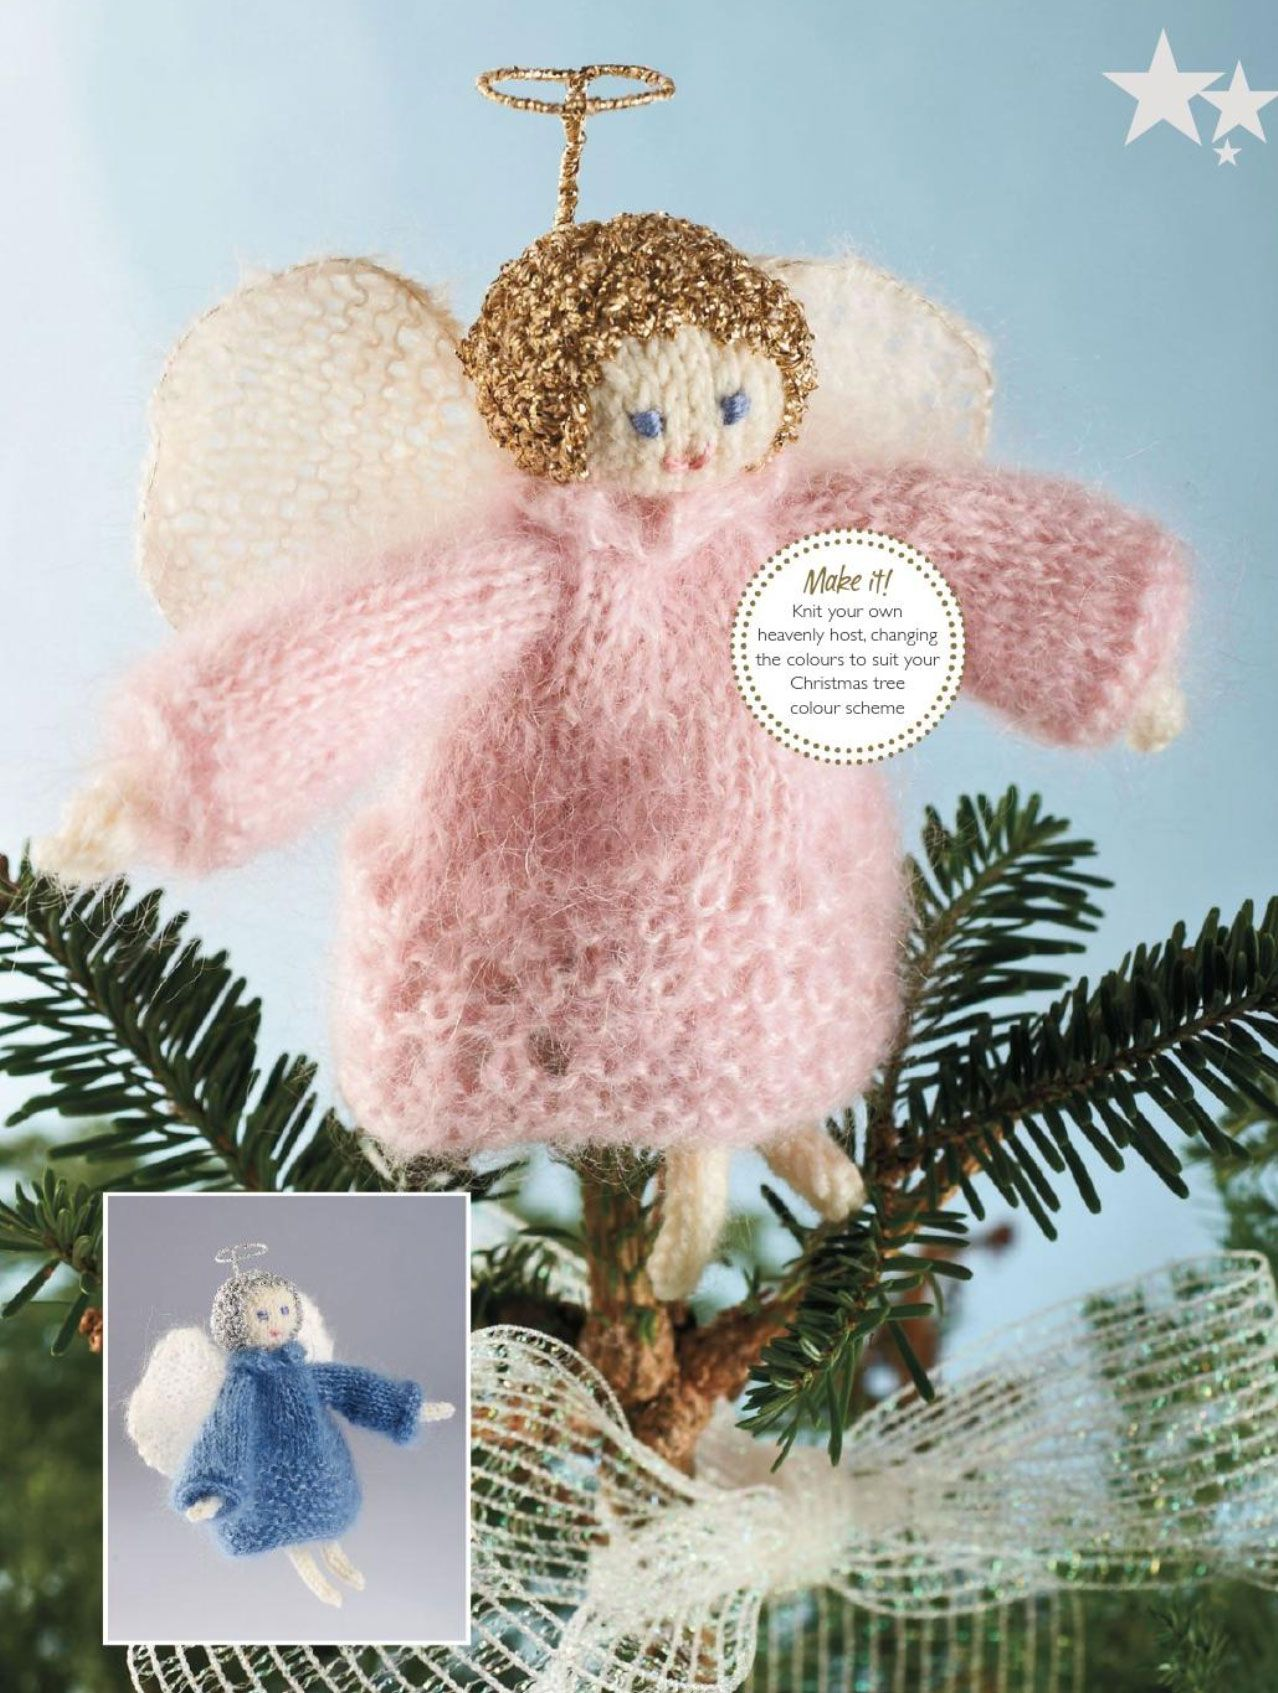 Knitted angel knit it pinterest angel xmas tree and xmas ornament knitted angel bankloansurffo Choice Image